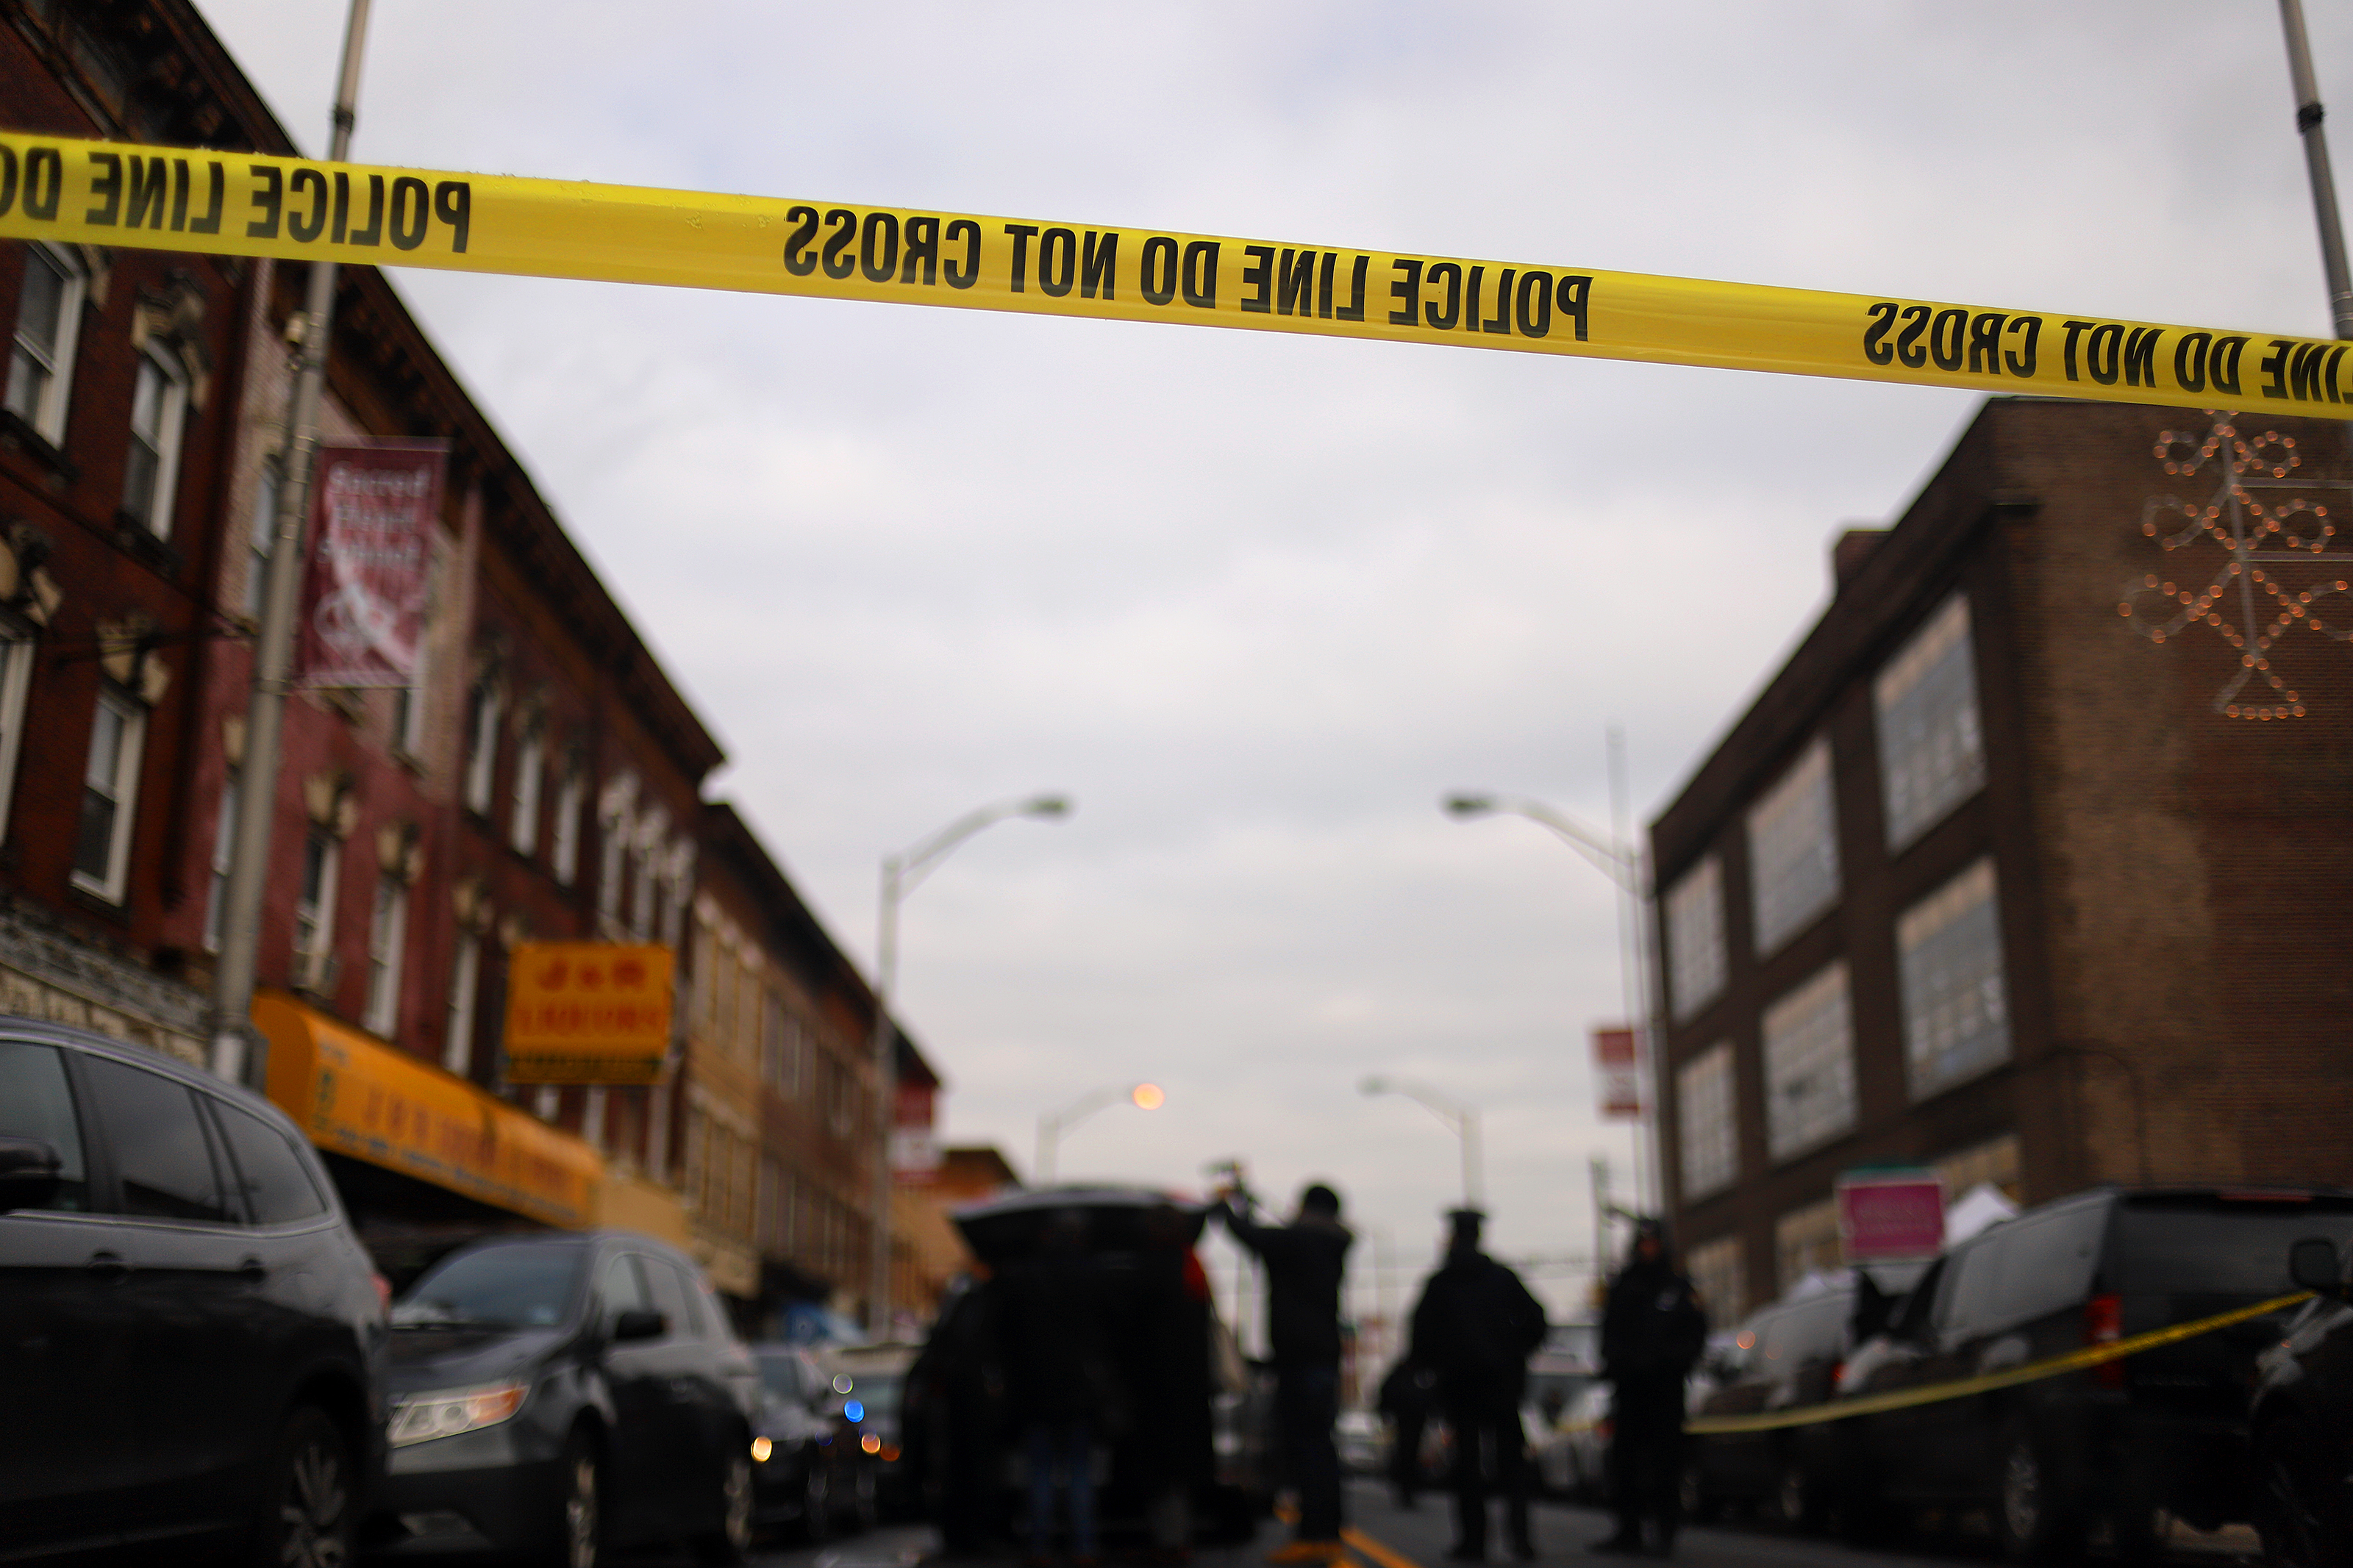 Recovery and clean up crews arrive to the JC Kosher Supermarket in the aftermath of a mass shooting on Dec. 11, 2019 in Jersey City, New Jersey.